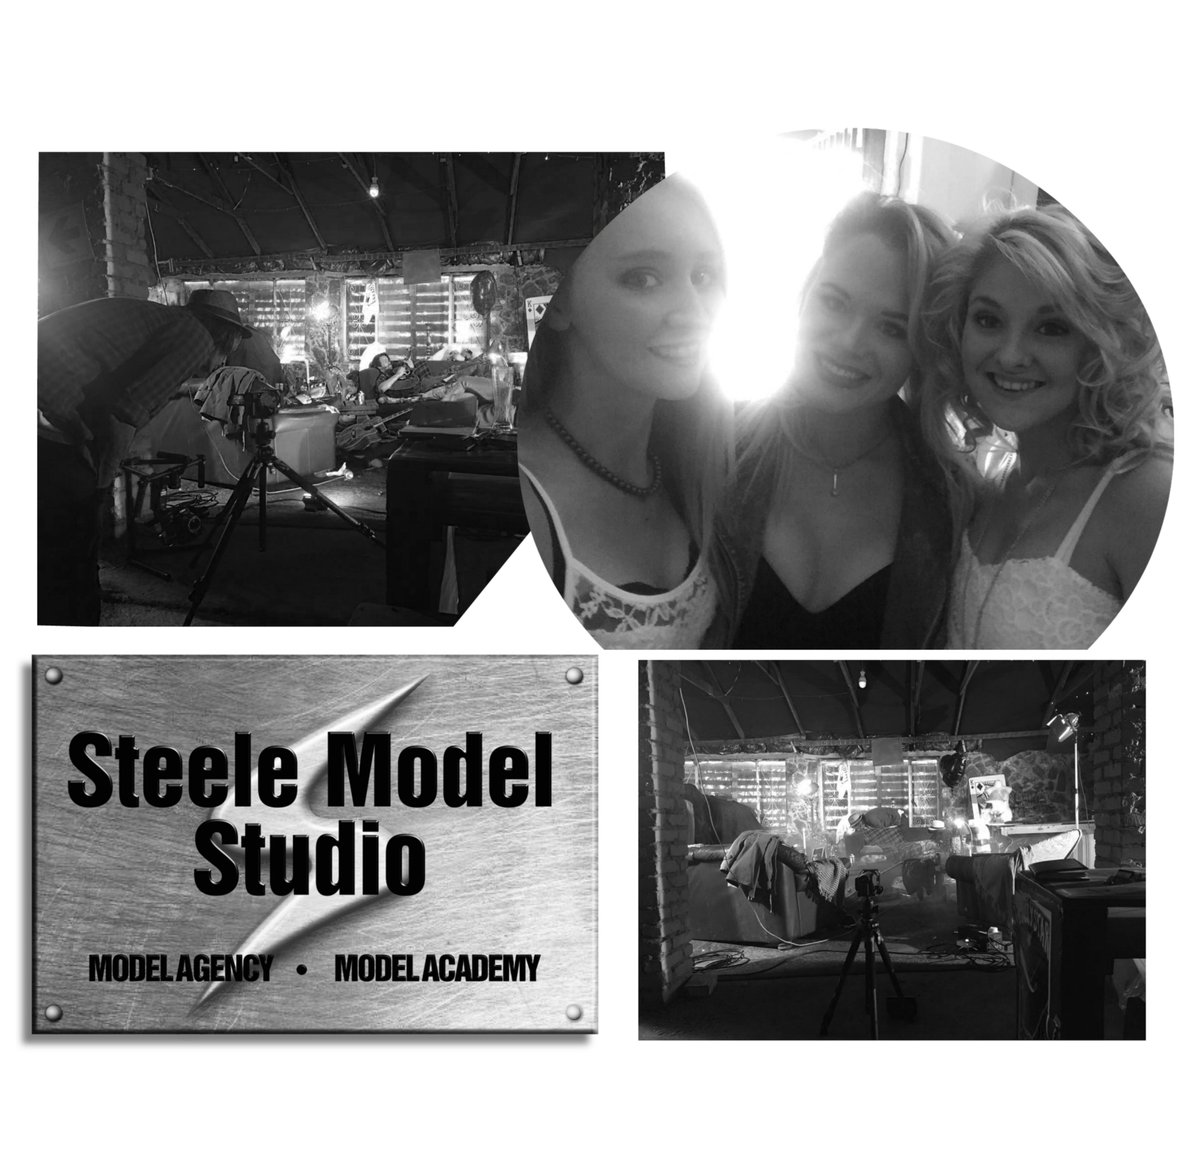 Steele Model Studio on Twitter: